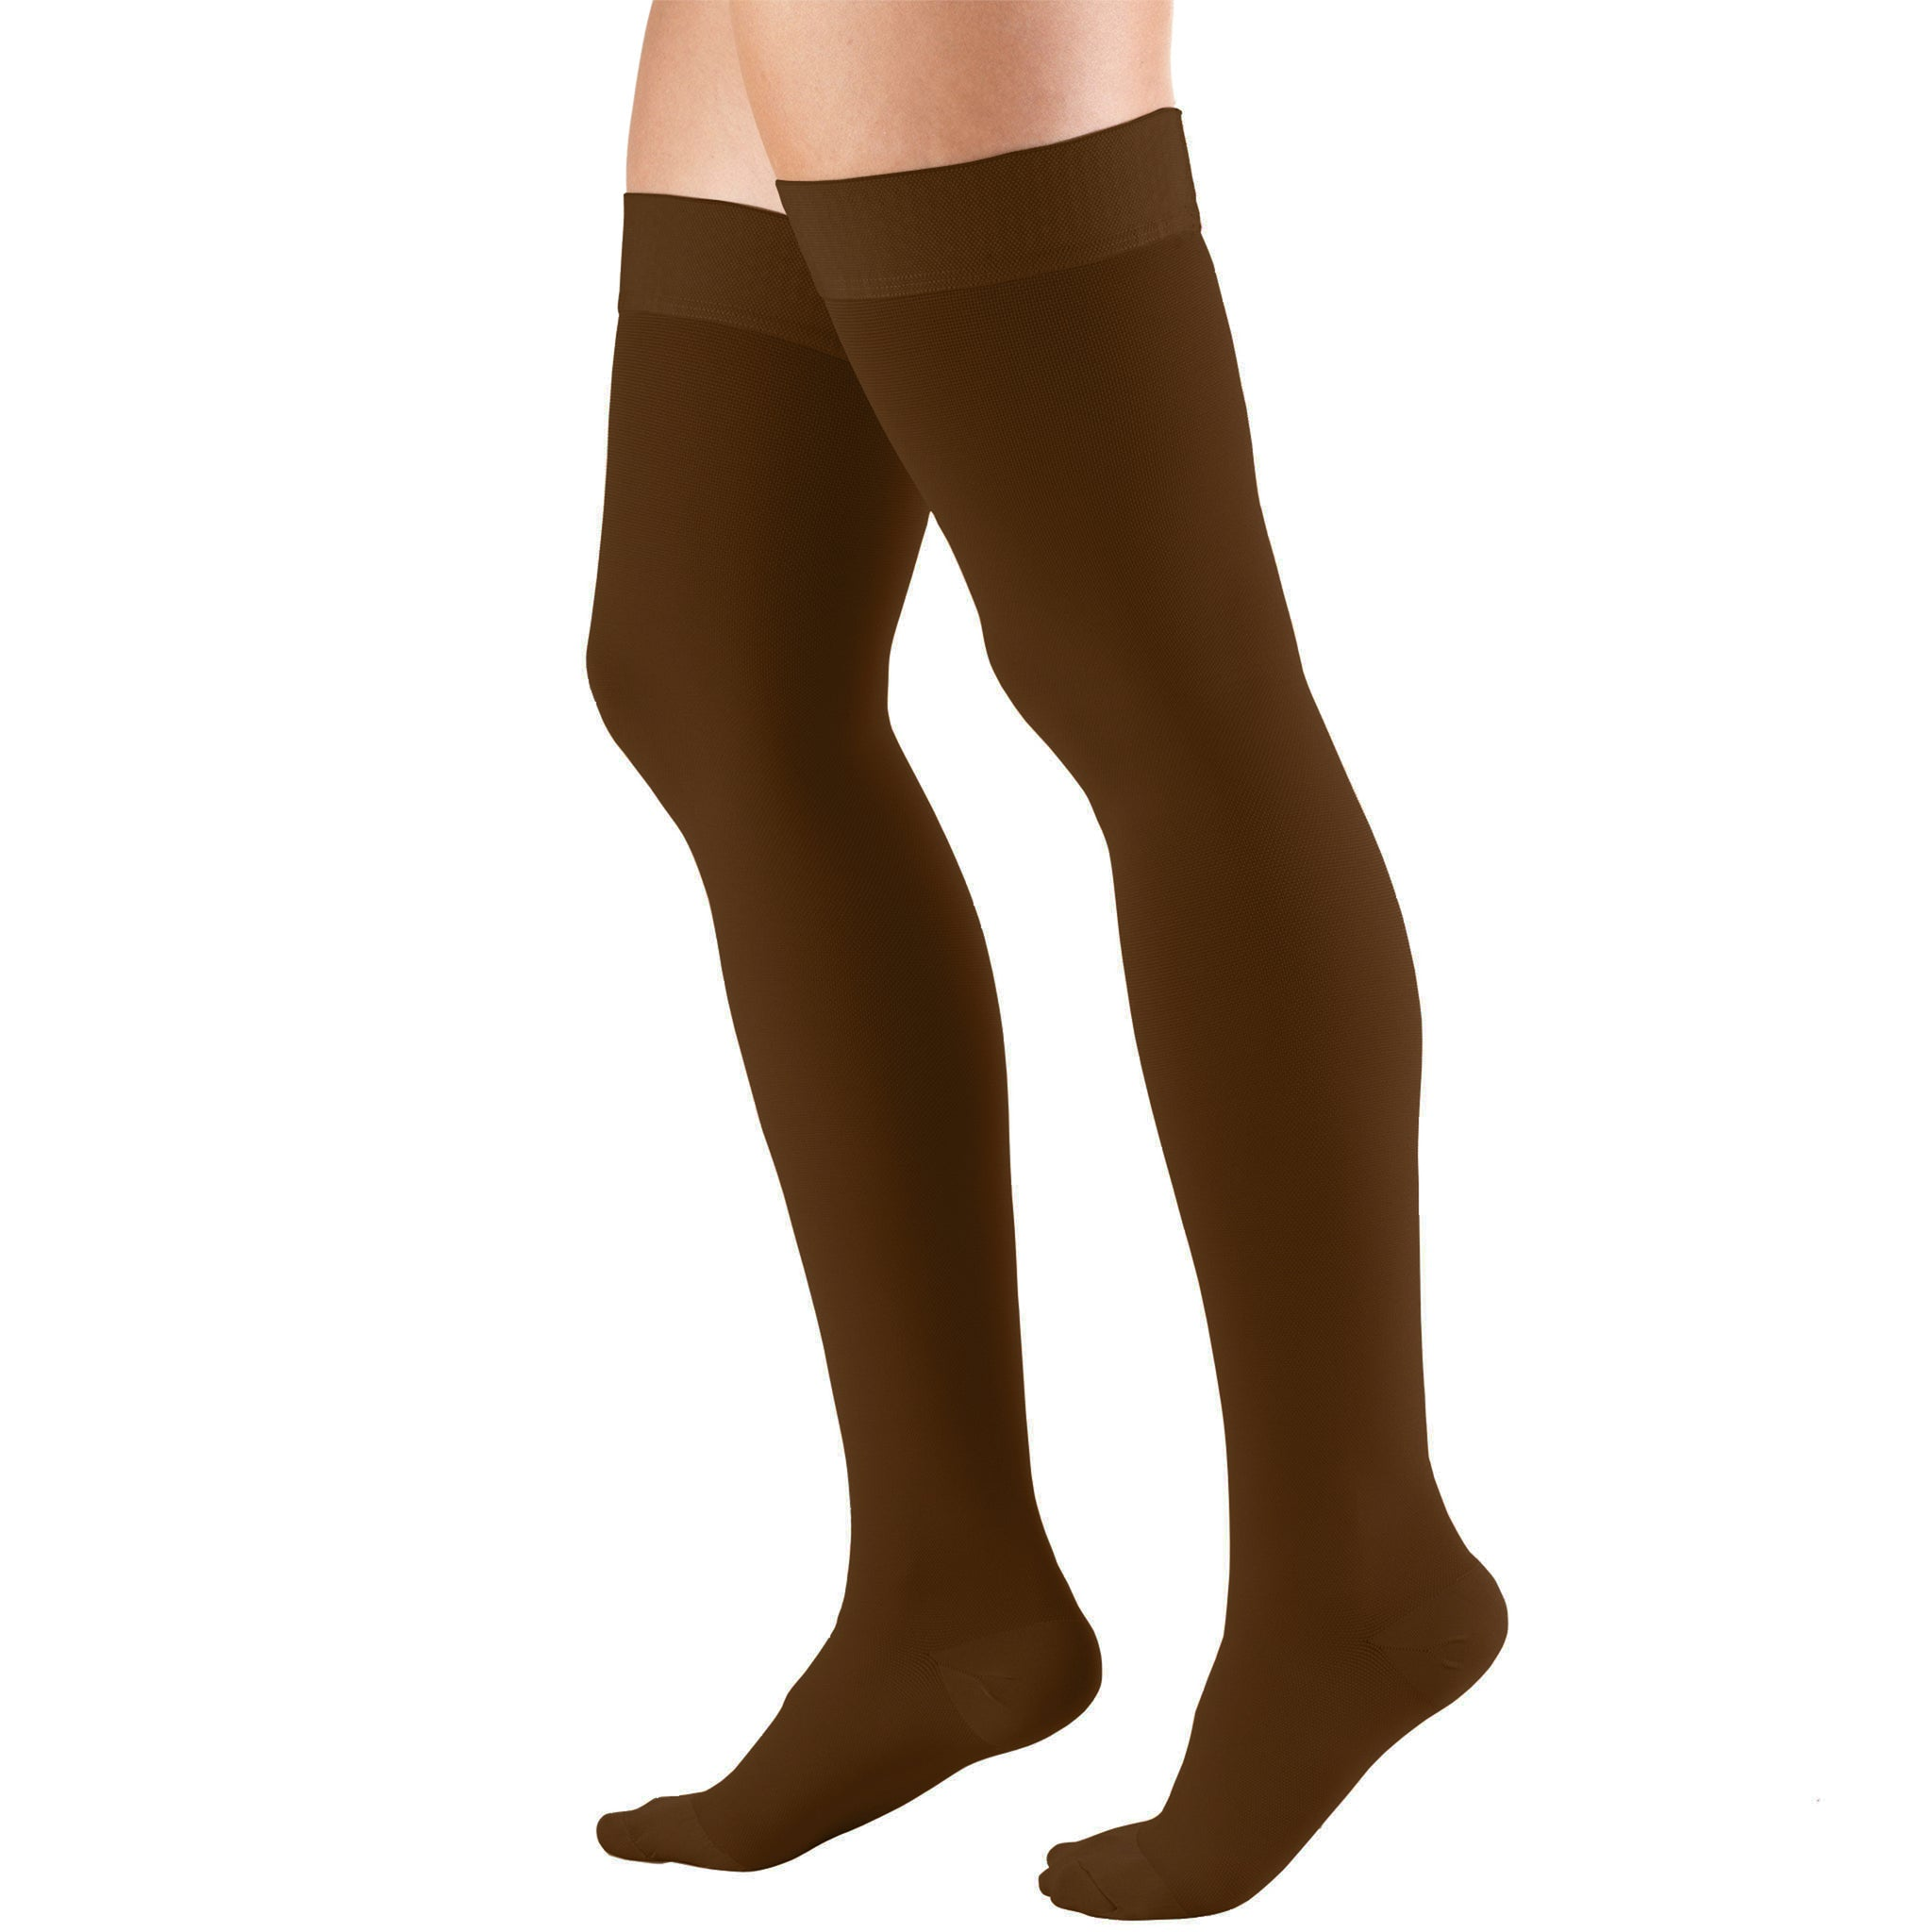 8868 THIGH HIGH CLOSED TOE BROWN STOCKINGS